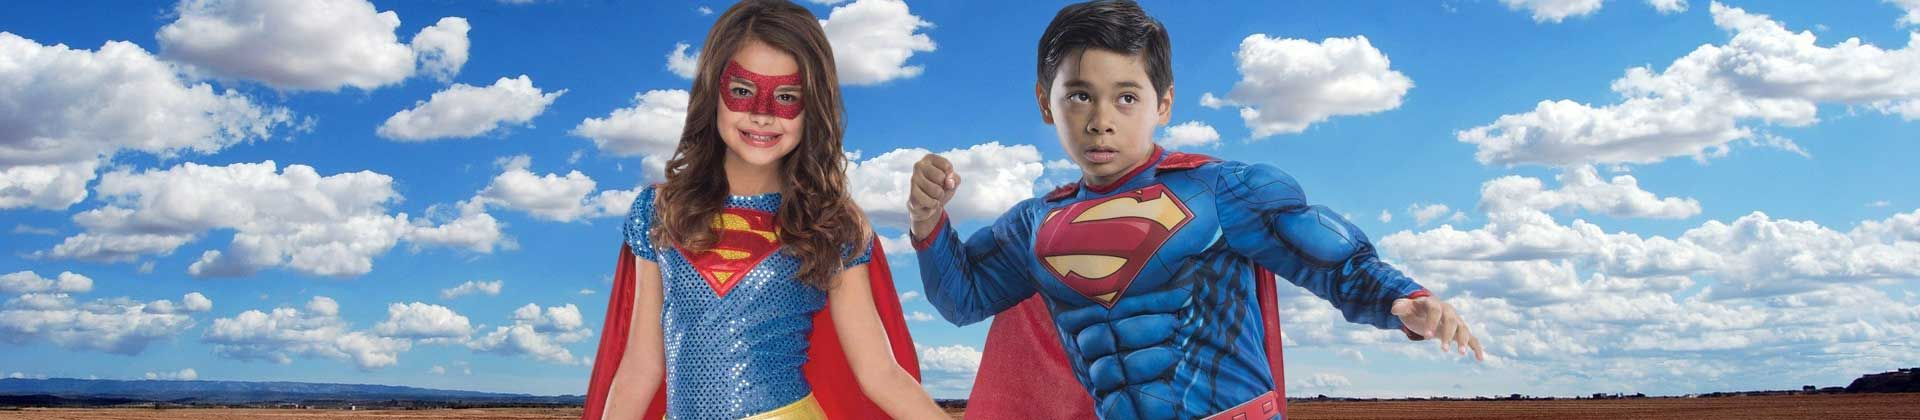 Although superheroes' looks change throughout the years, a cape will always be the classic addition to complete any heroic transformation. Once your little superhero boy or girl puts on a cape, stage a cute photo-op with the help of a standing fan and a stool or stepladder. Turn the fan on to create some wind and have your superheo kid strike a classic flying pose while lying across the stool or stepladder.